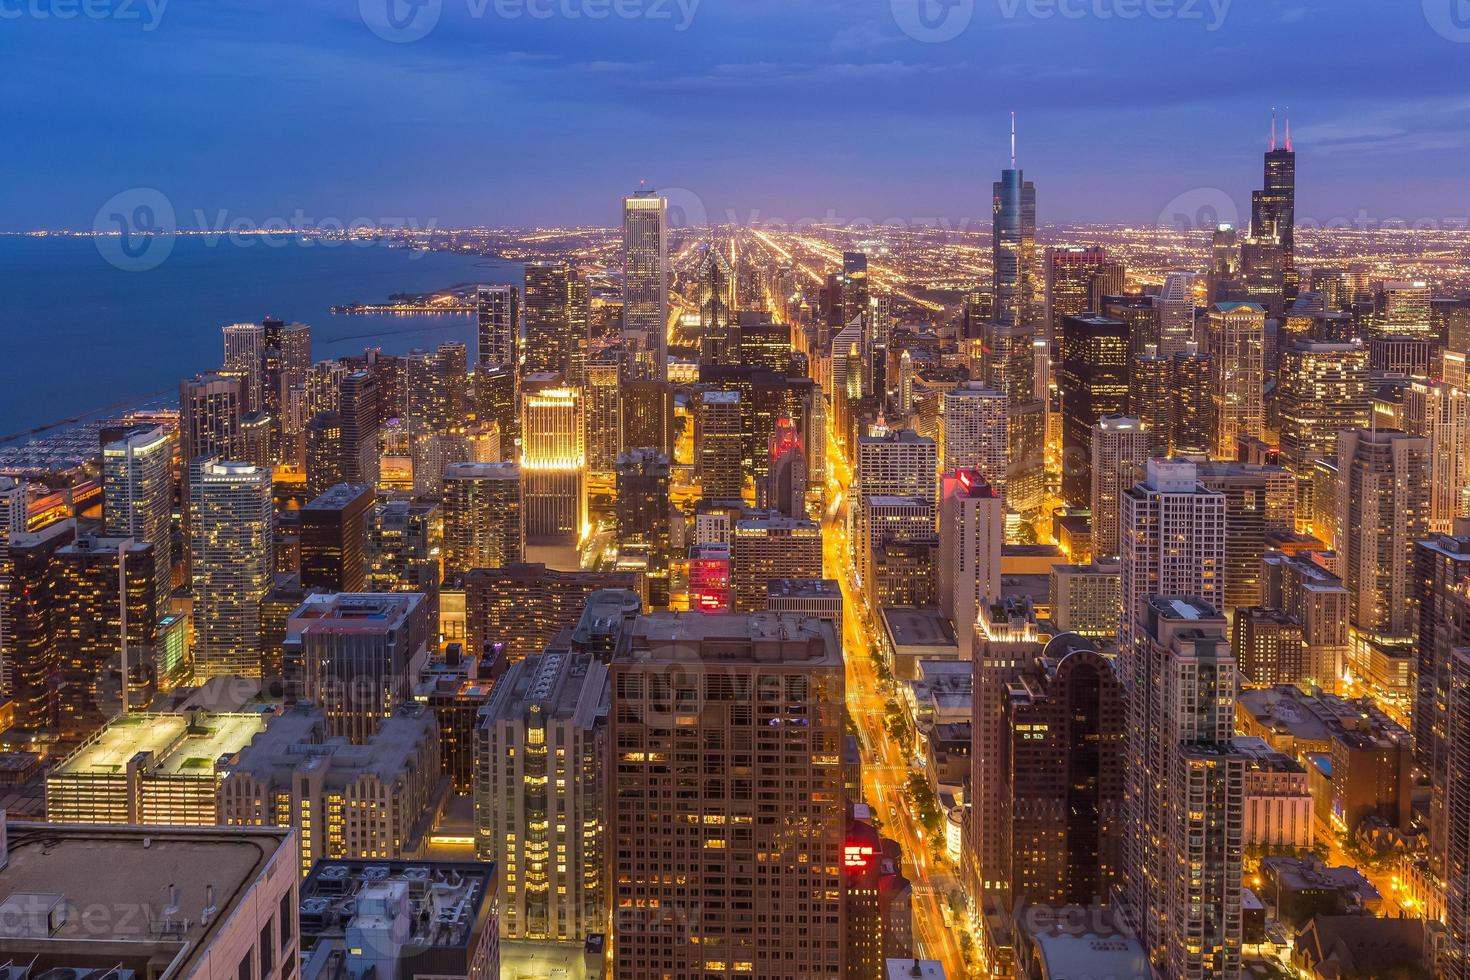 The bustling Chicago downtown skyline at night in Illinois photo